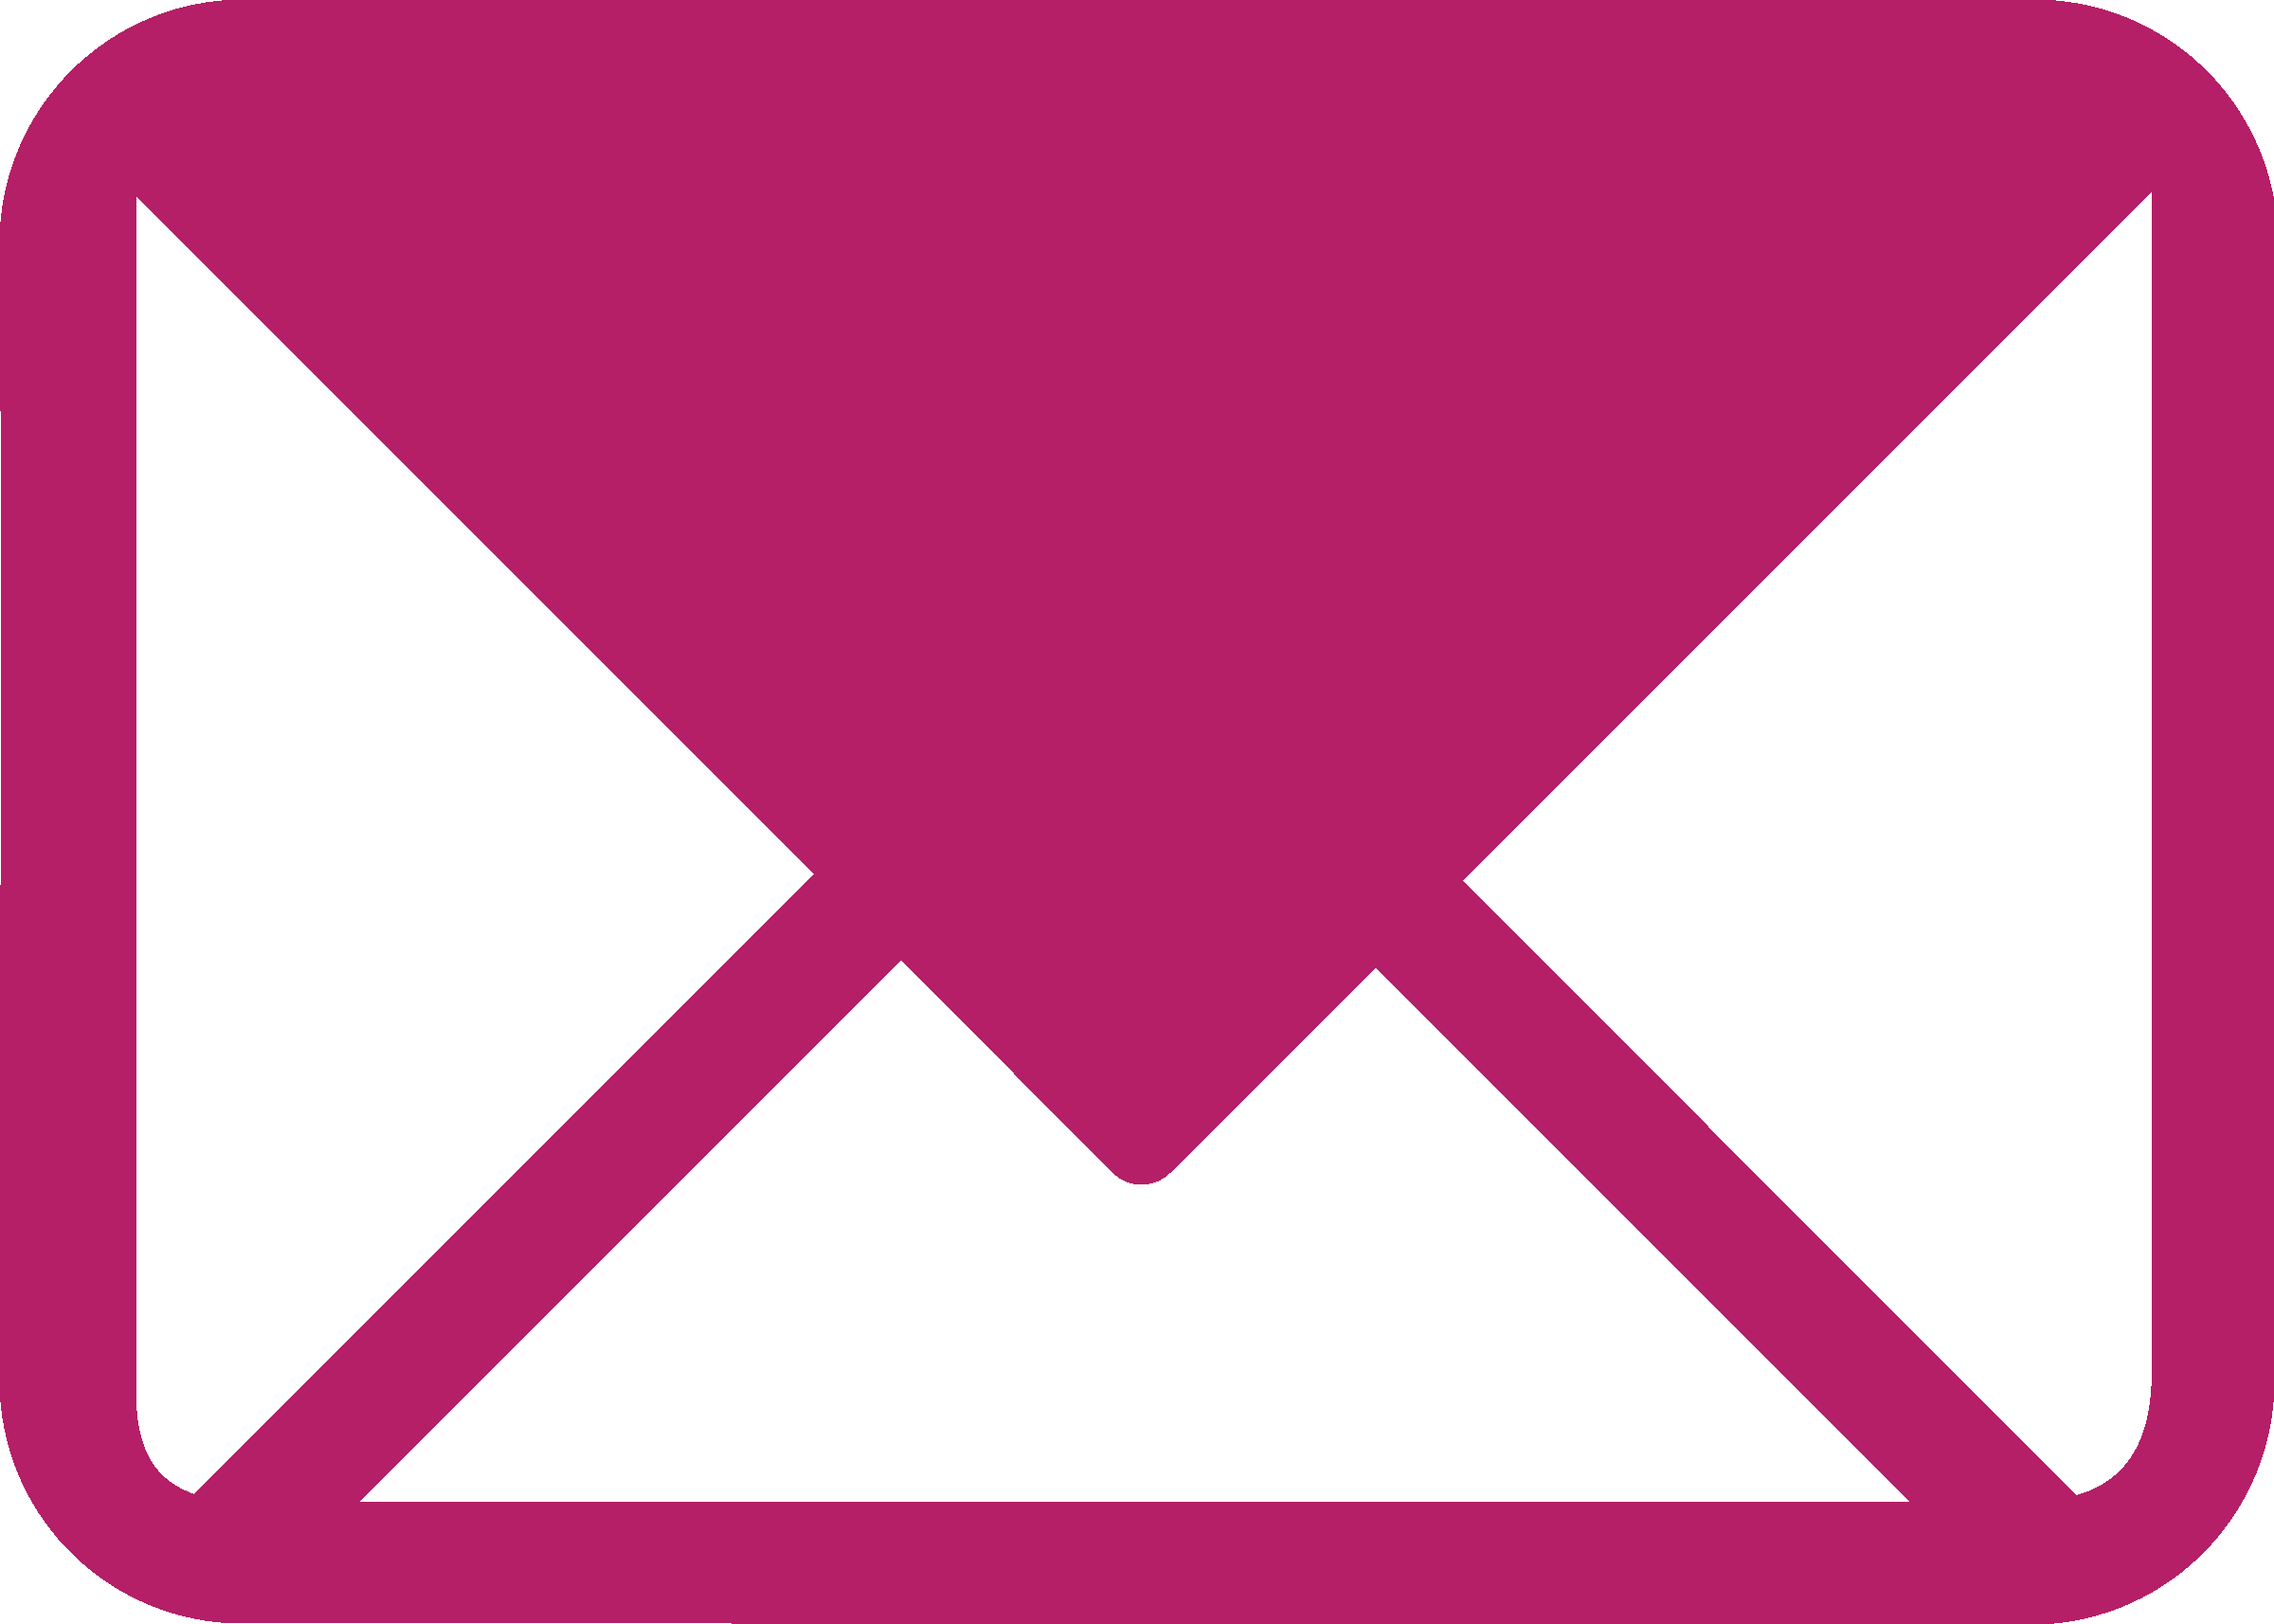 mail-purple.png (35 KB)